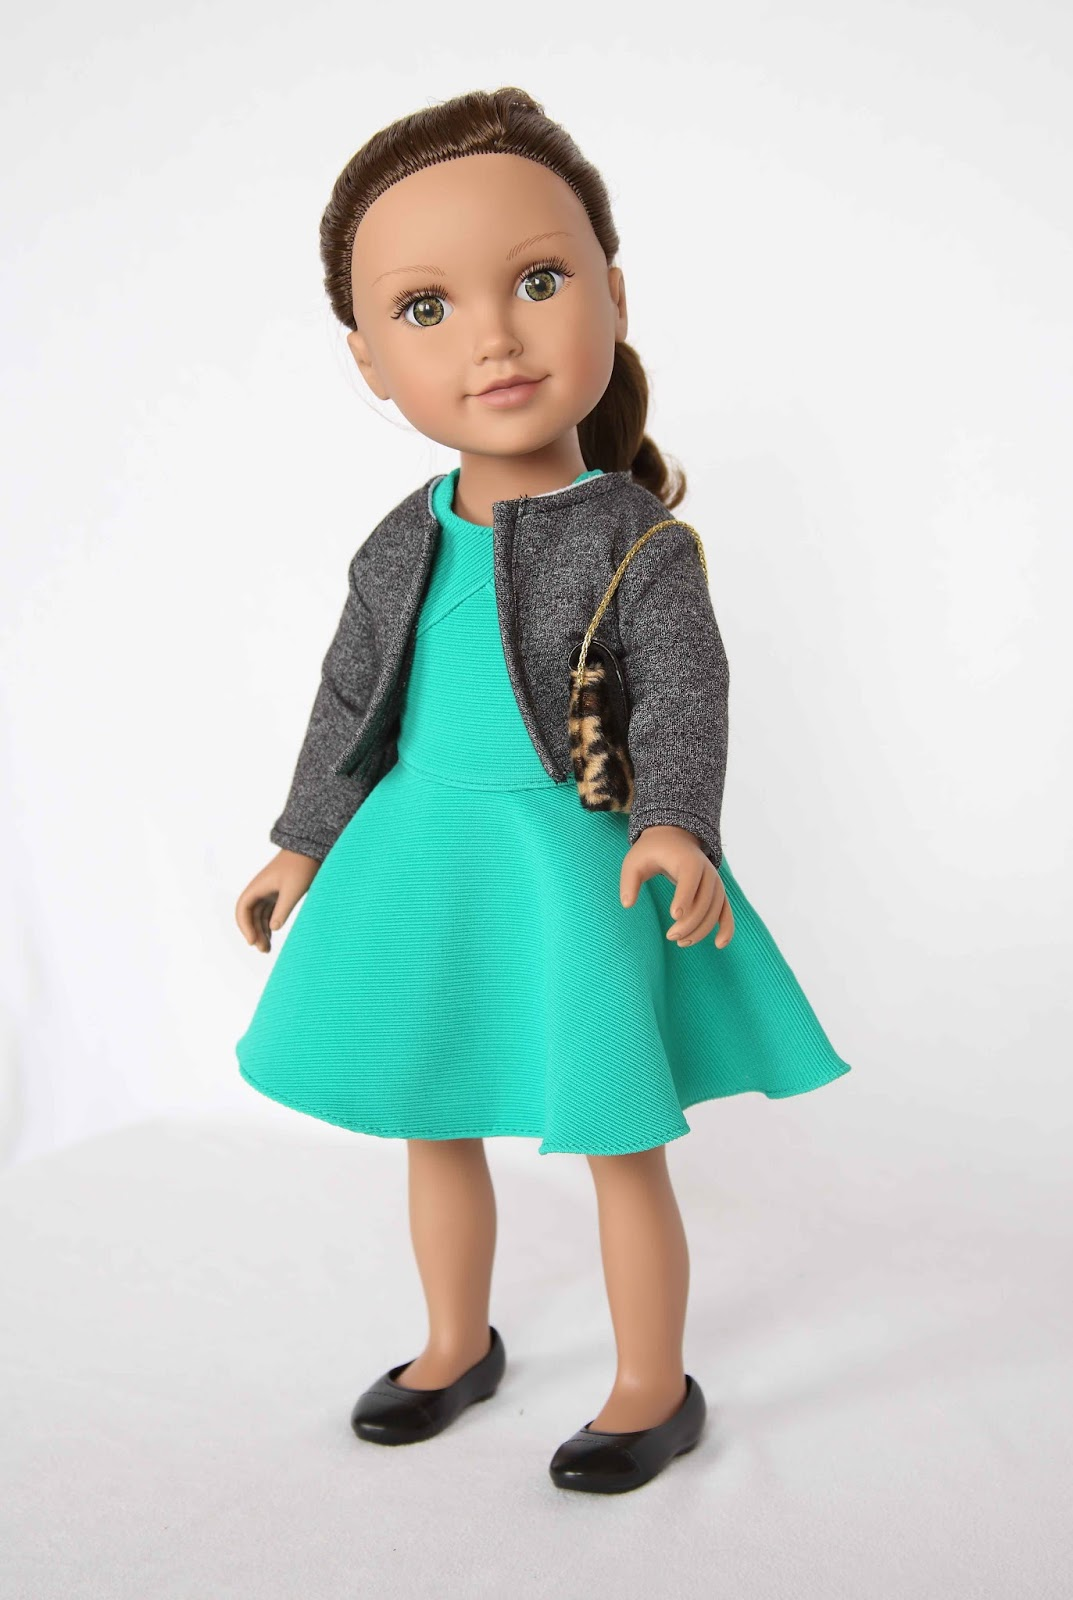 My Journey Girls Dolls Adventures: New York Overalls Outfit